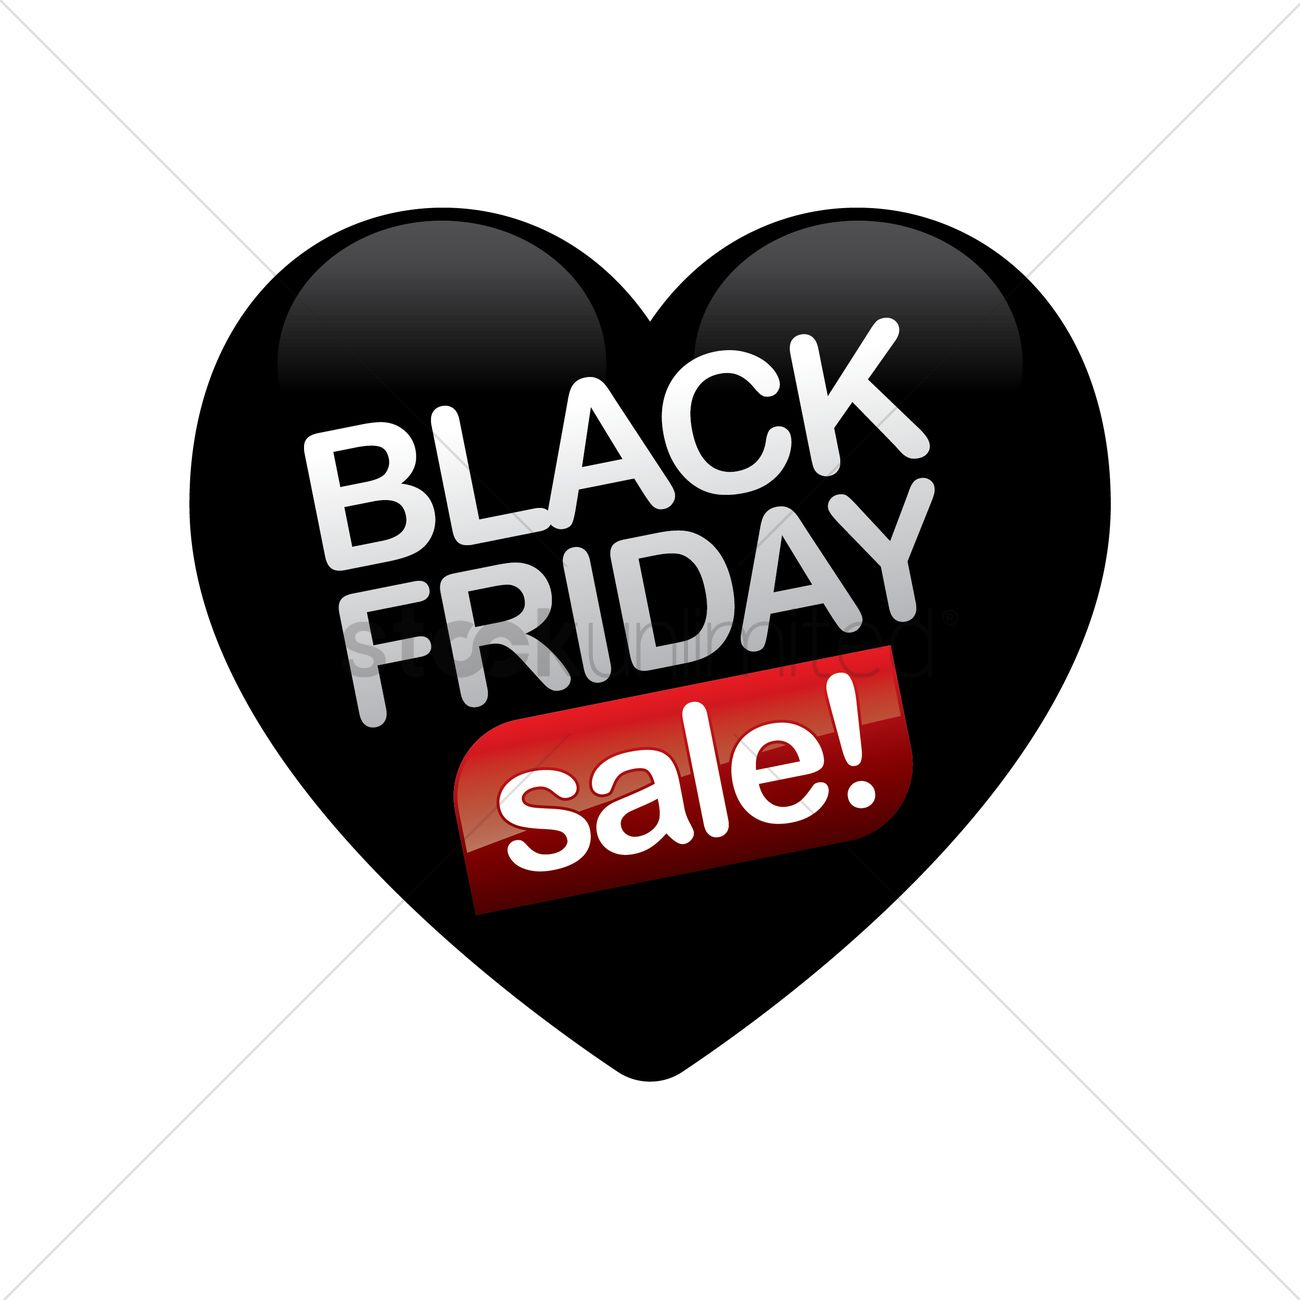 black friday sale vector image 1604923 stockunlimited rh stockunlimited com black friday shopping clip art black friday shopping clip art